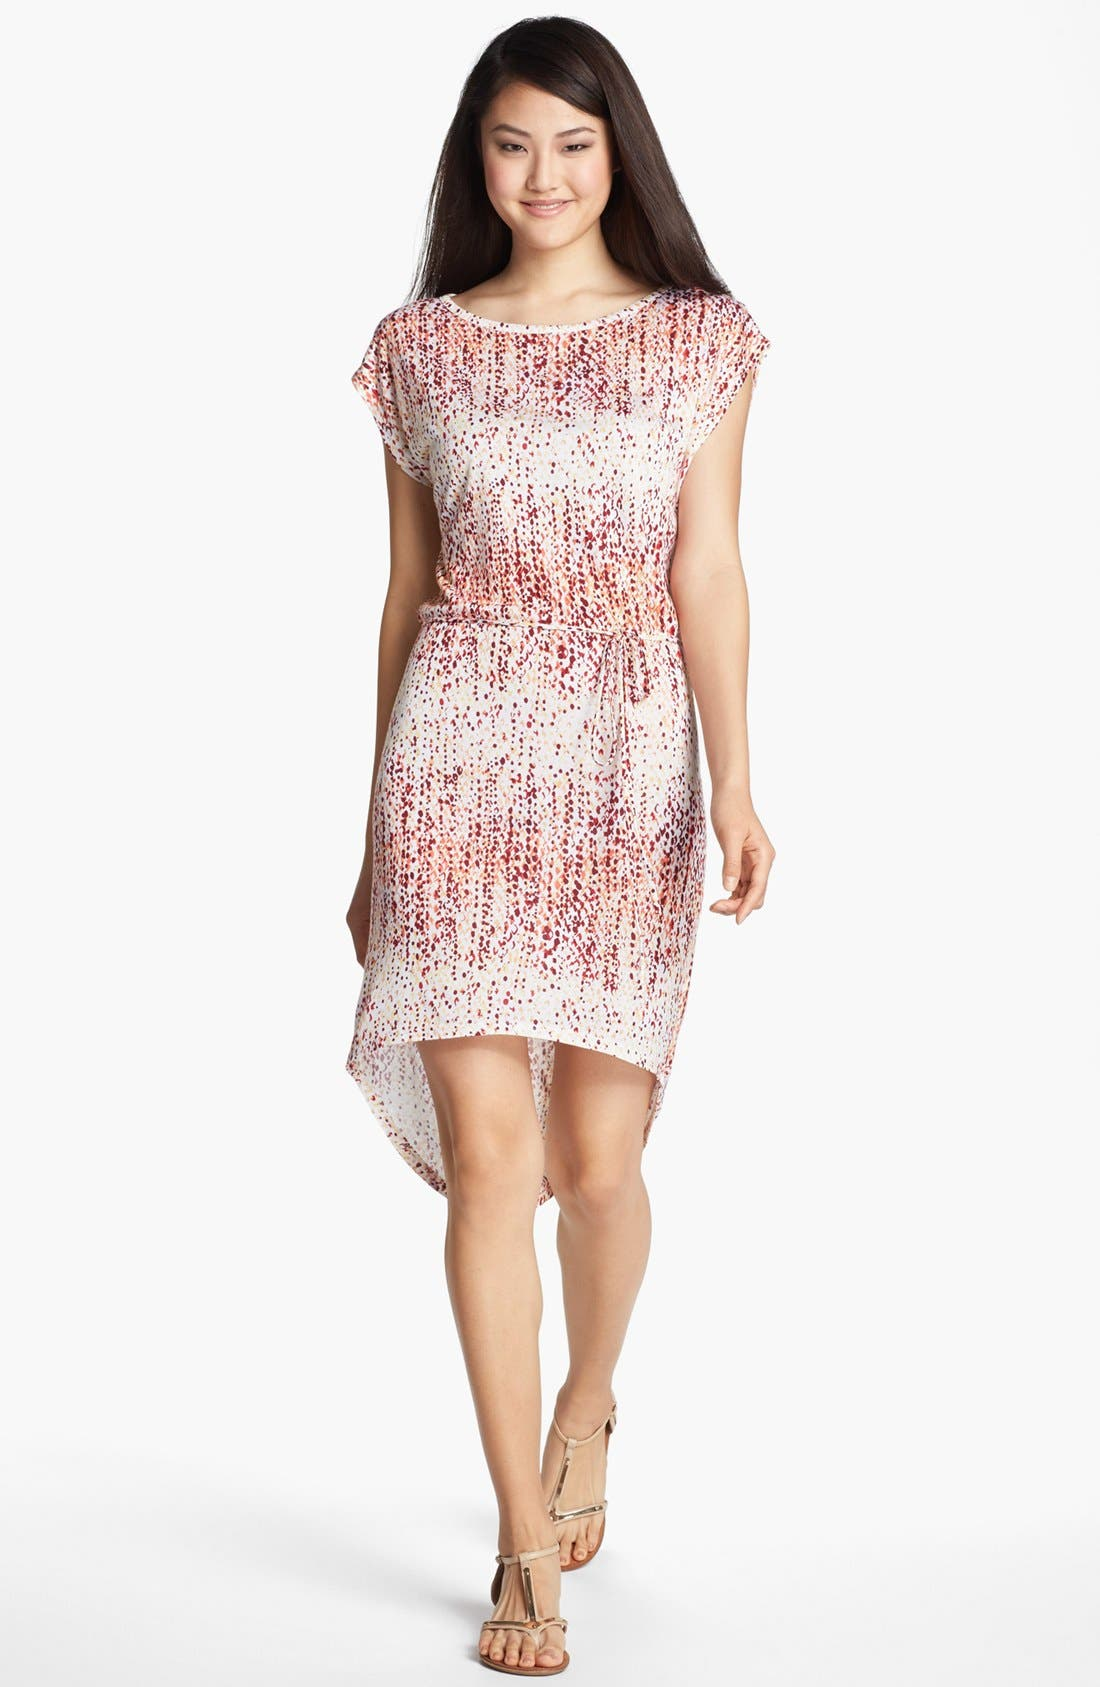 Alternate Image 1 Selected - Loveappella High/Low Dress (Petite)